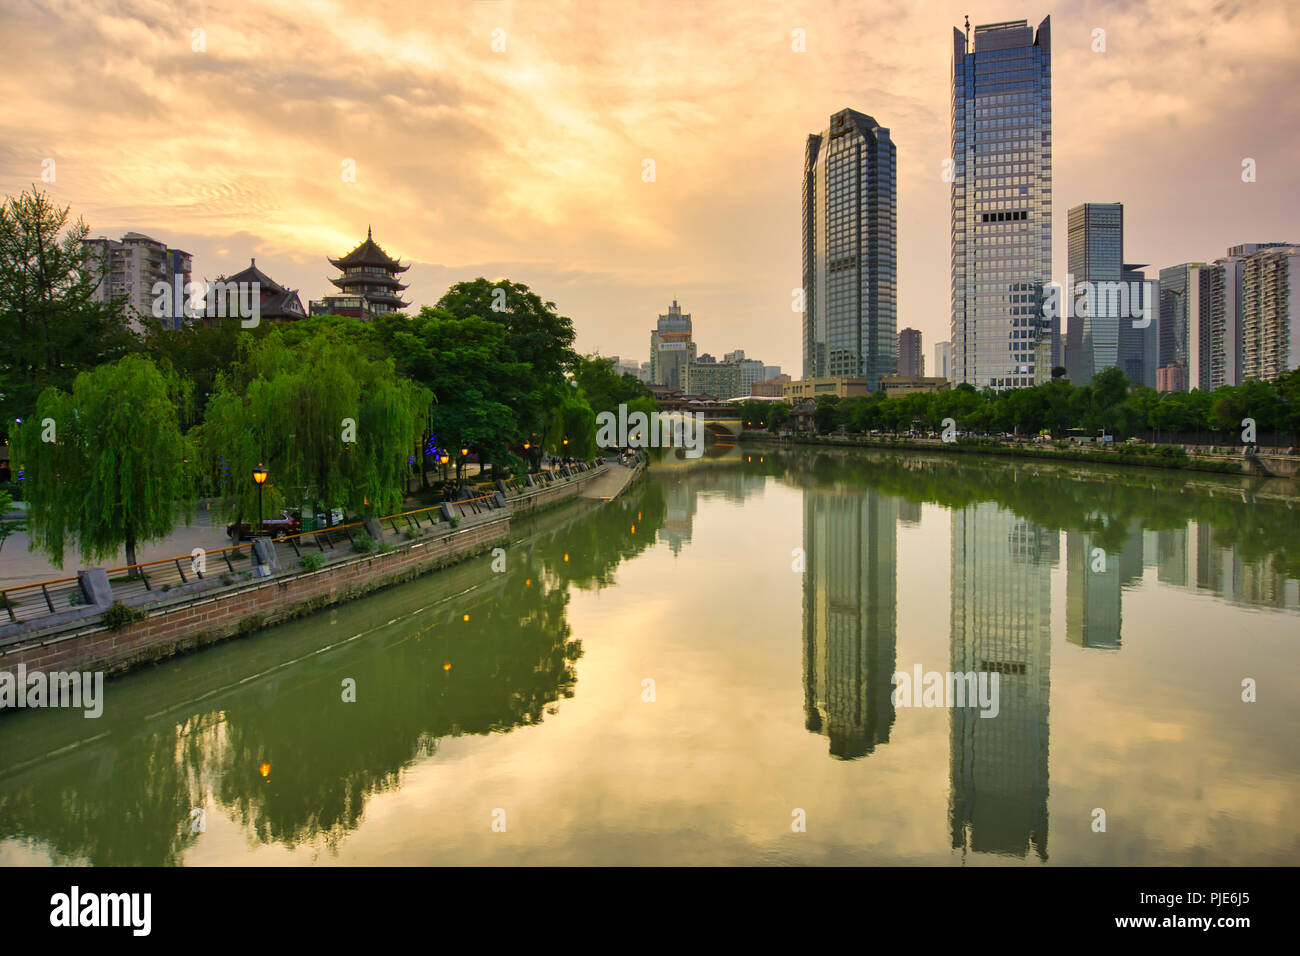 Cheng Du City is an ever-present in the city's storied heritage. Prosperous metropolis combination of grandeur and historic architecture. - Stock Image